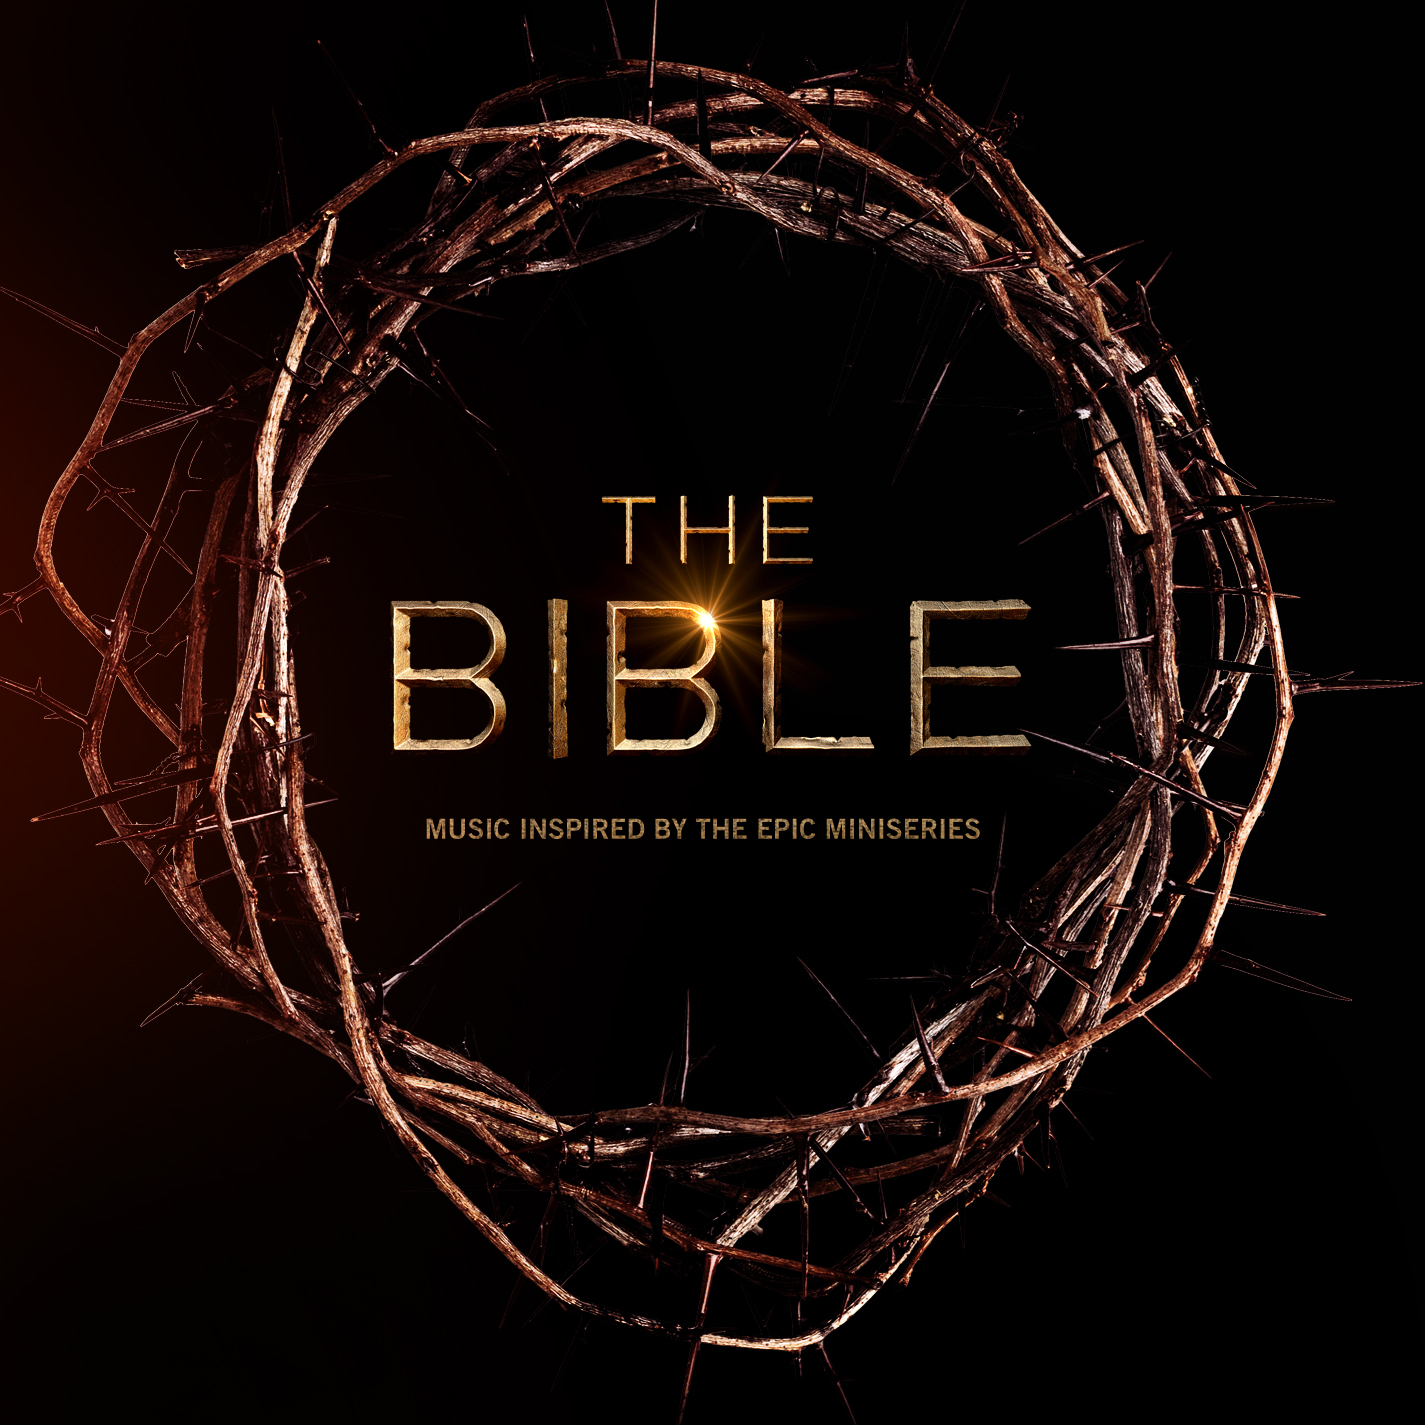 The Bible - The Epic Miniseries 2013 HDTV Download